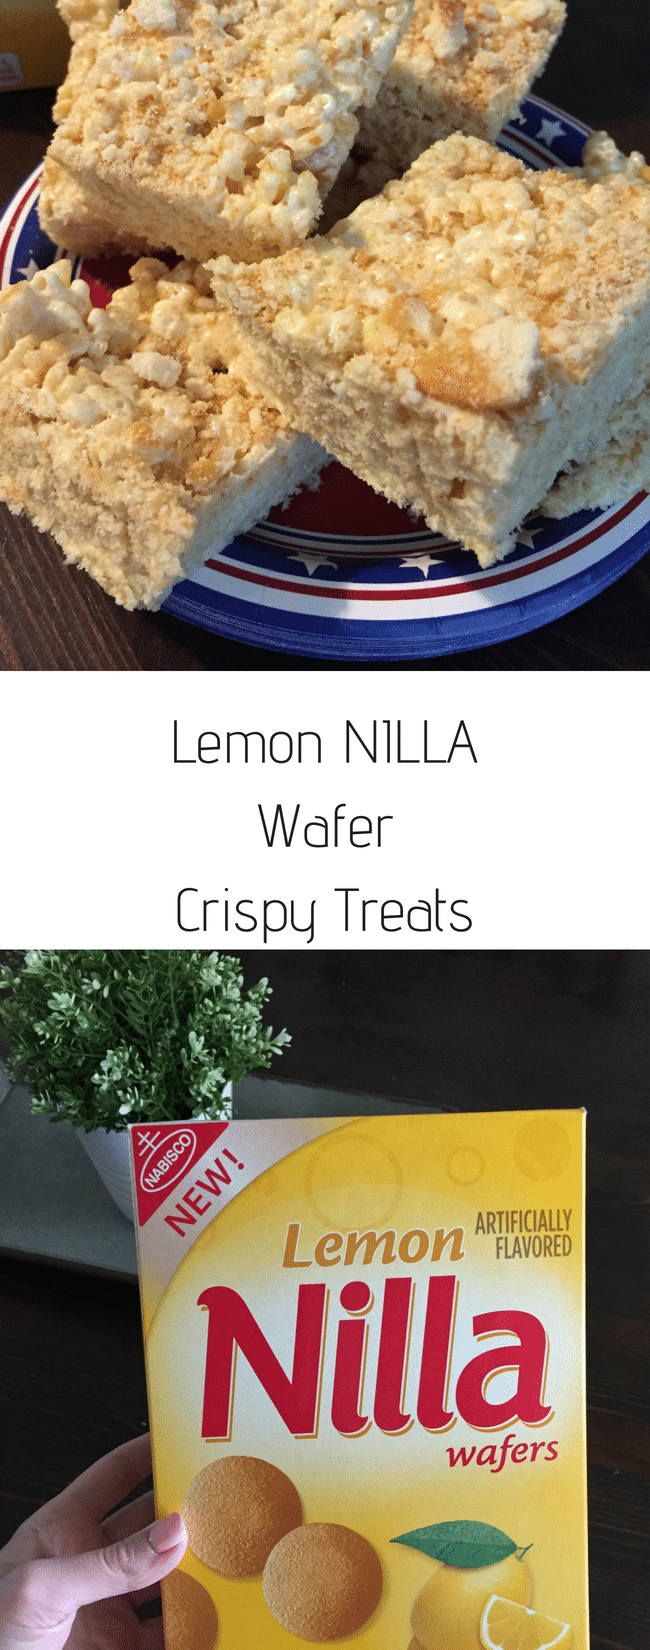 You'll love these Crispy Treats using Lemon NILLA Wafers! #NILLASummerParty, #IC #ad via @clarkscondensed